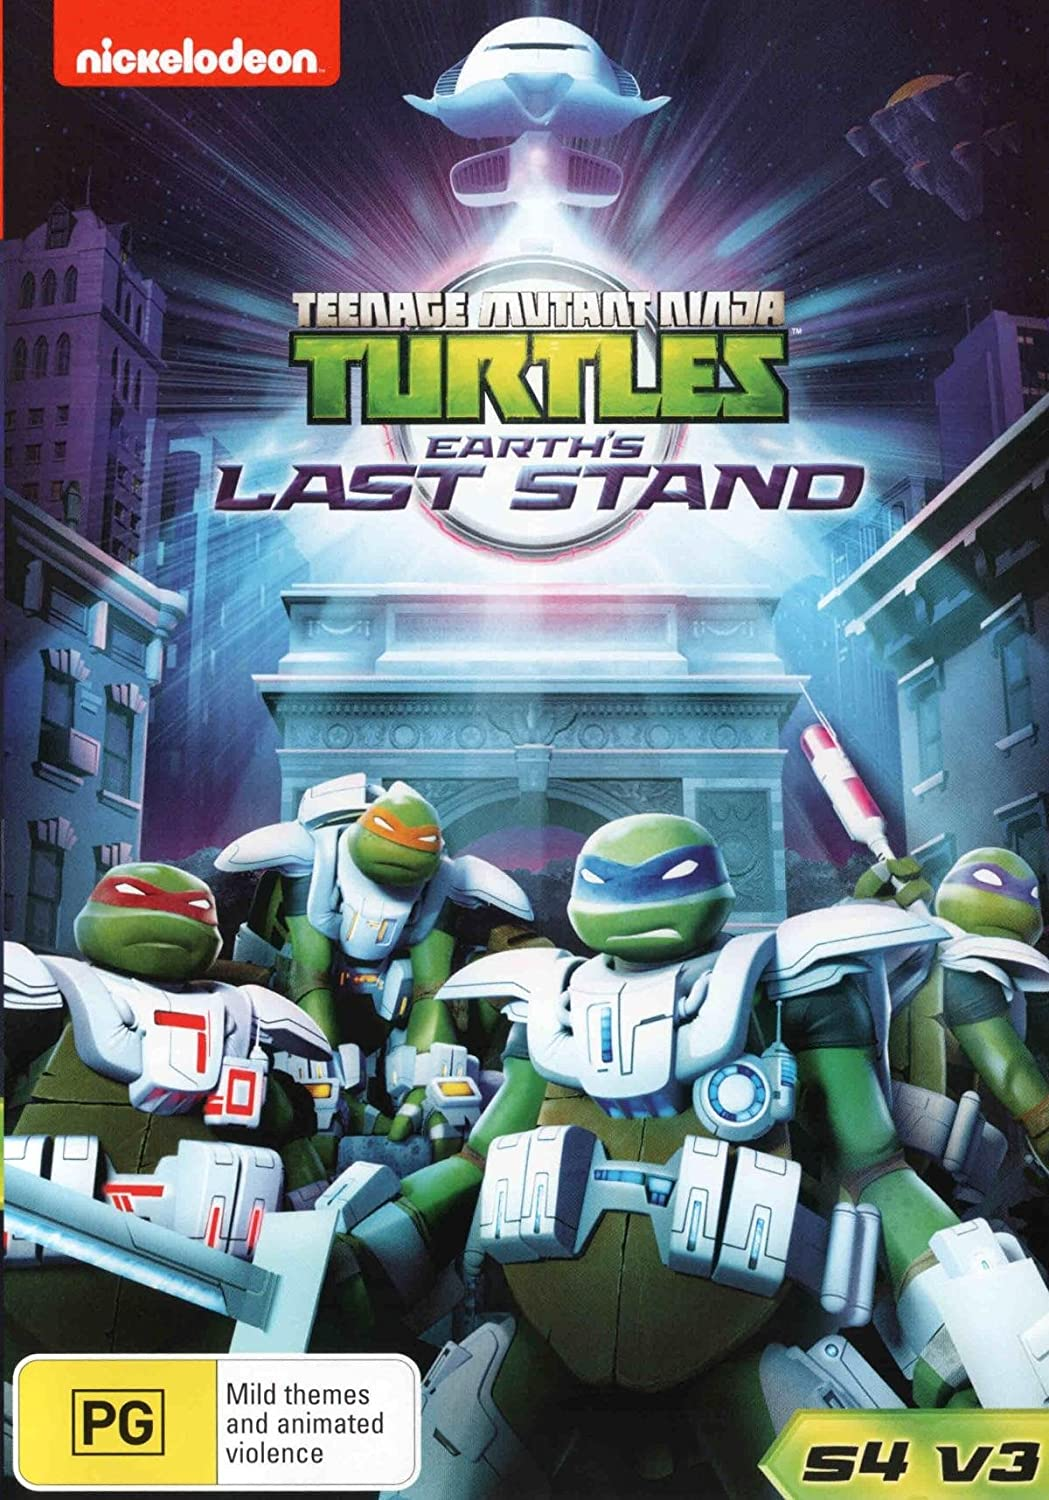 Amazon.com: Teenage Mutant Ninja Turtles: Earths Last Stand ...